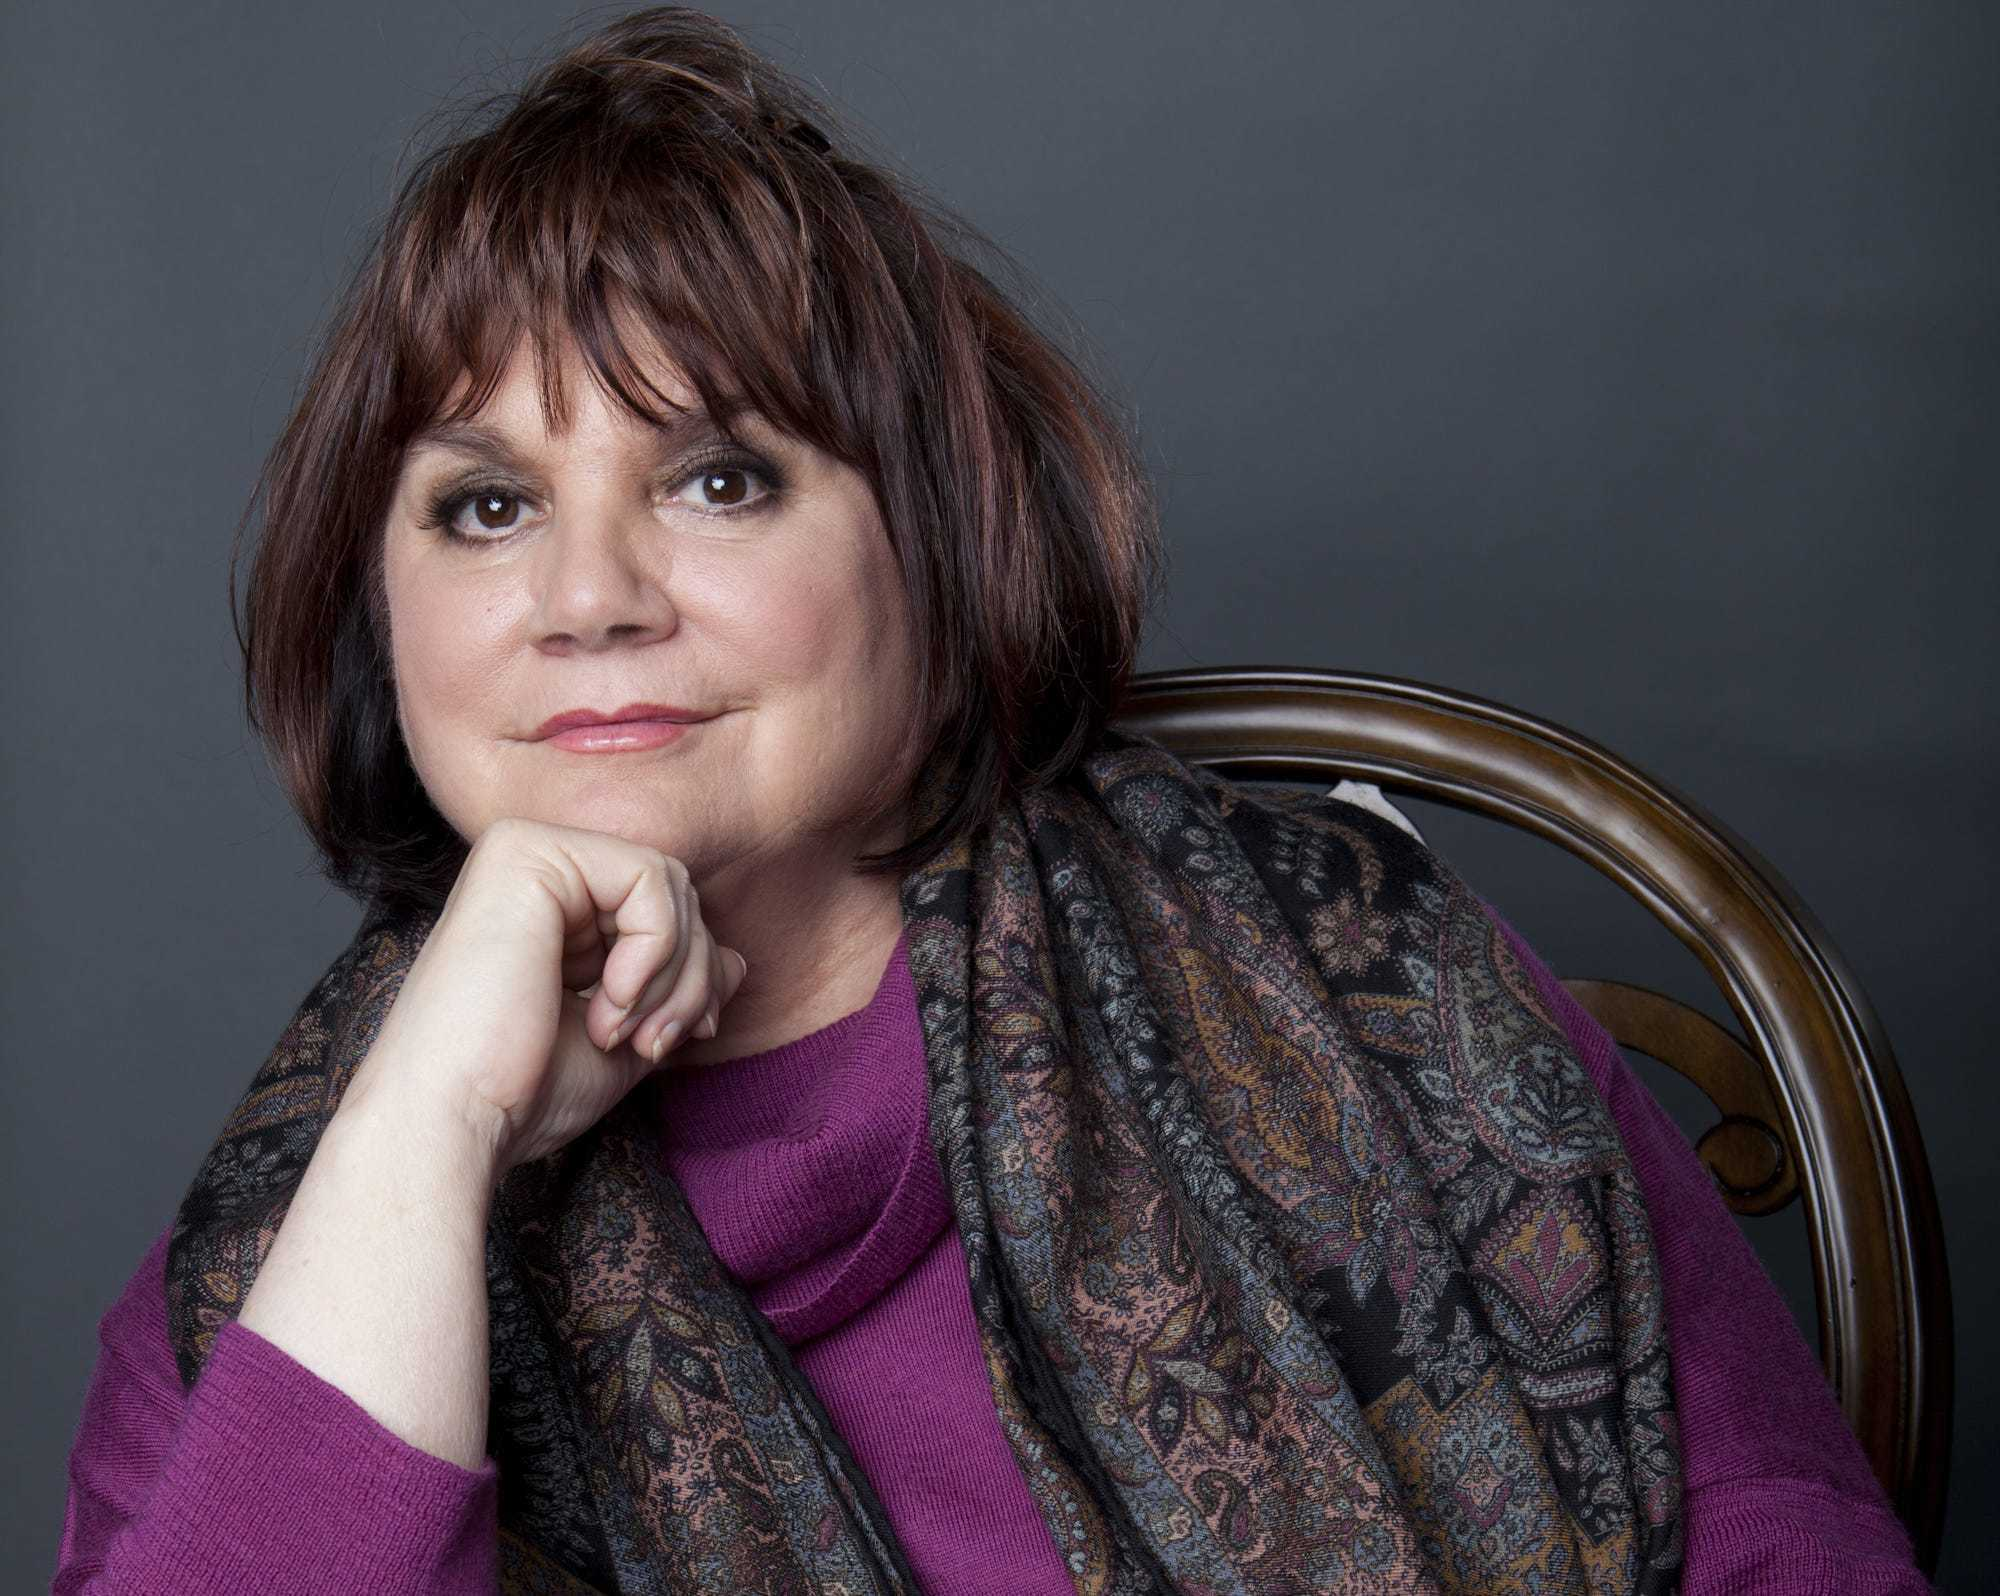 These 2 iconic Linda Ronstadt albums are going into the Grammy Hall of Fame